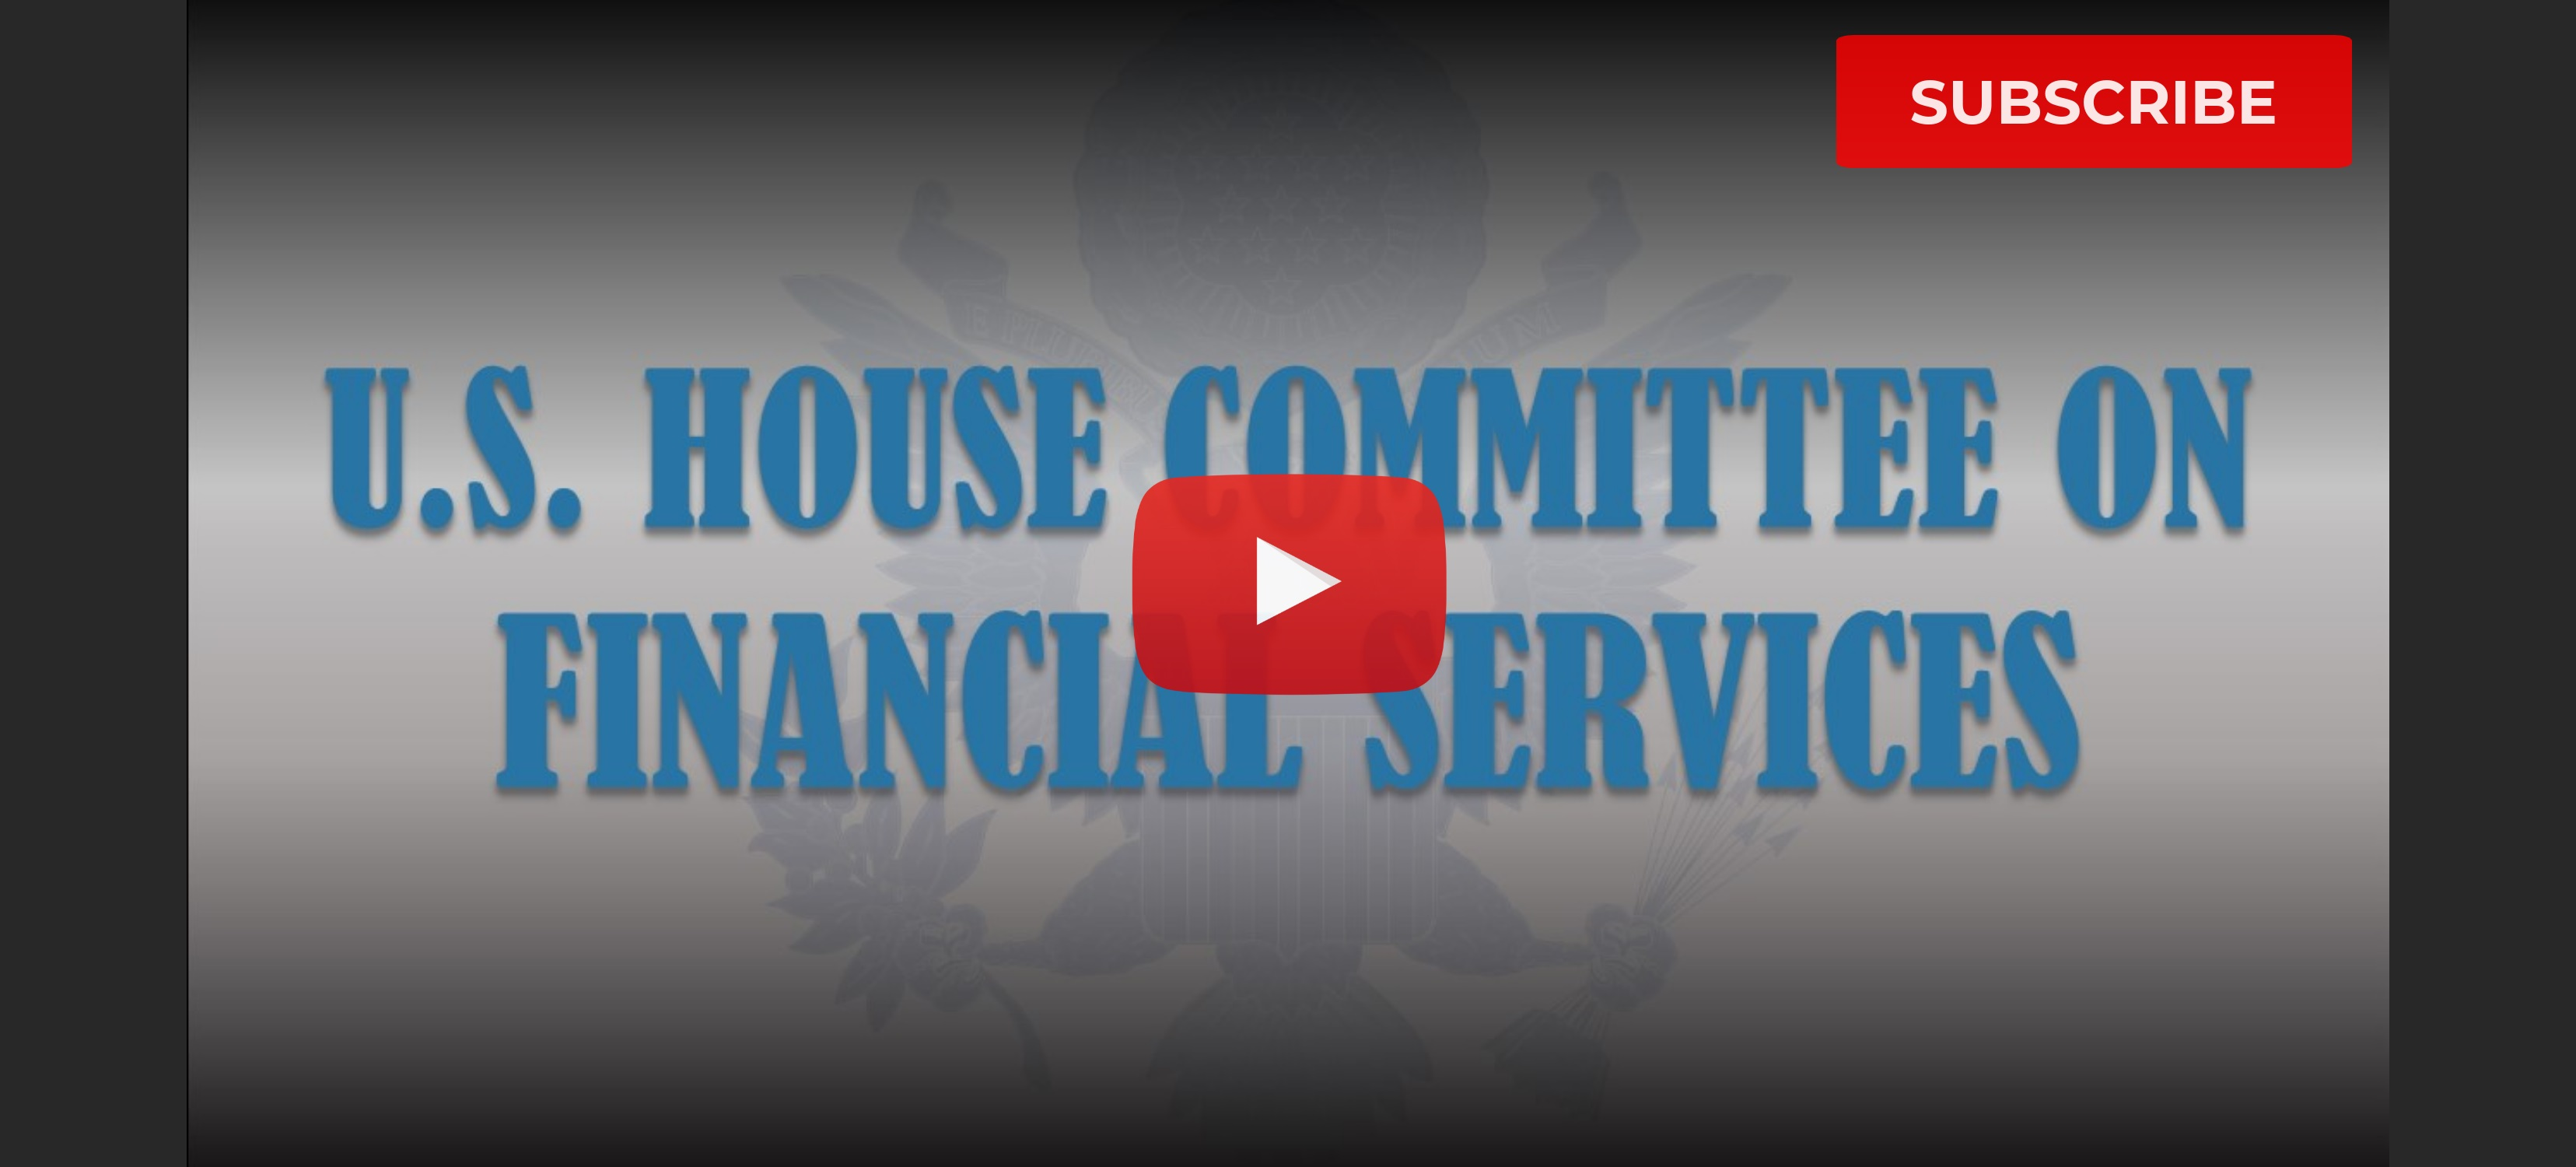 U S  House Committee on Financial Services